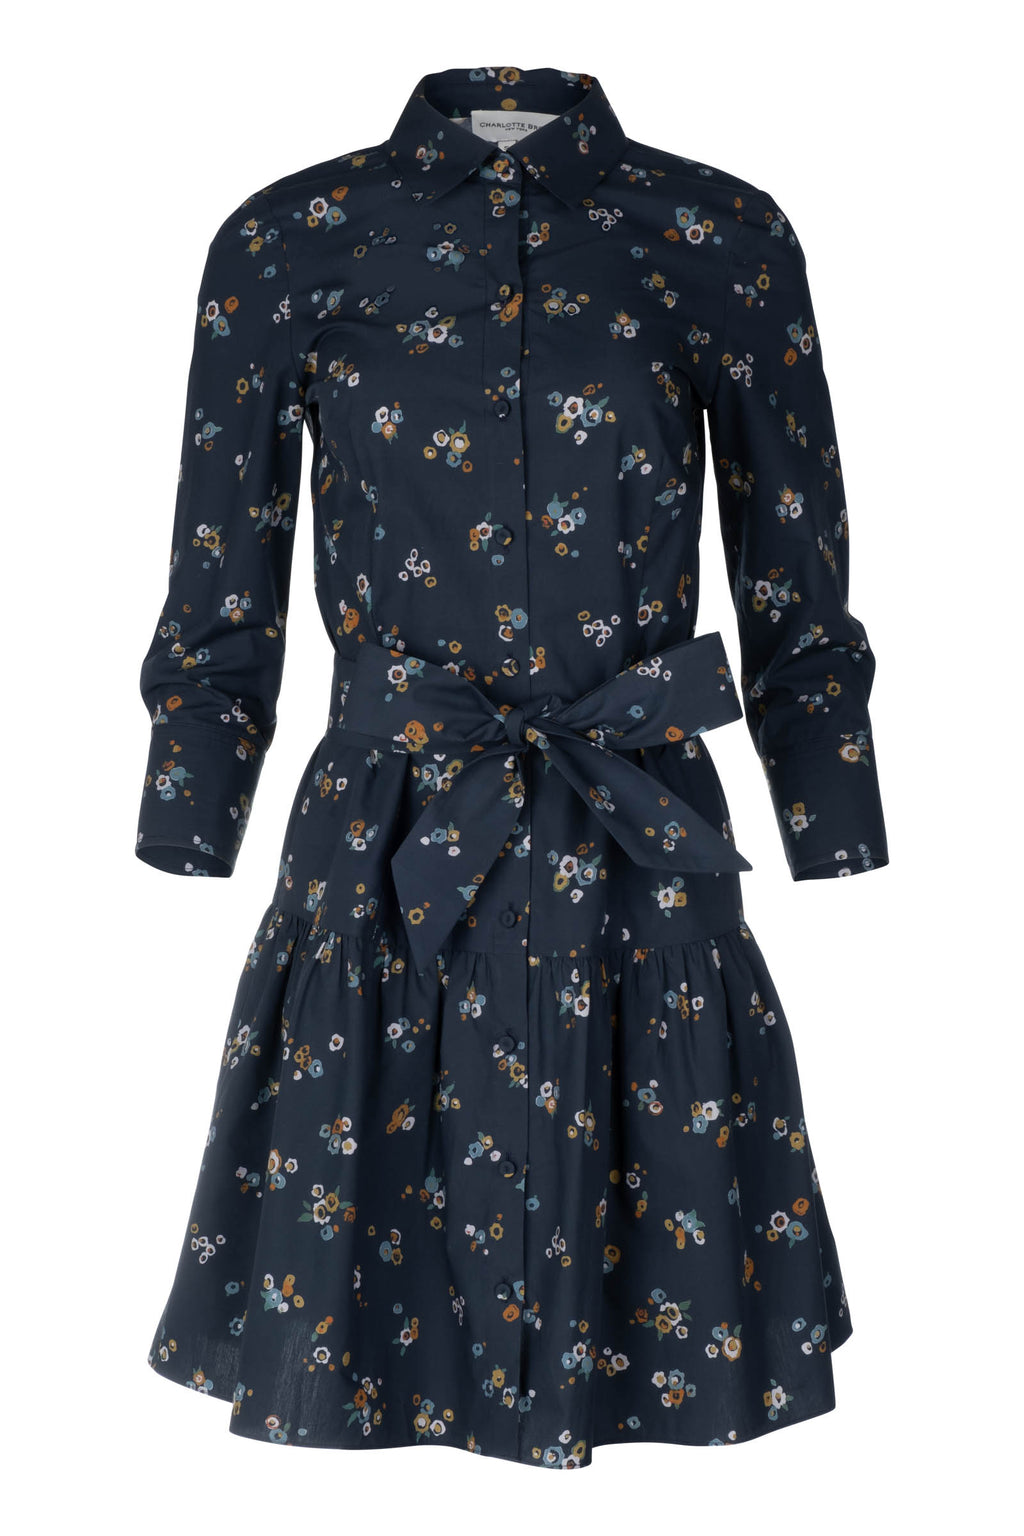 Rosemary Dress - Meadow Print